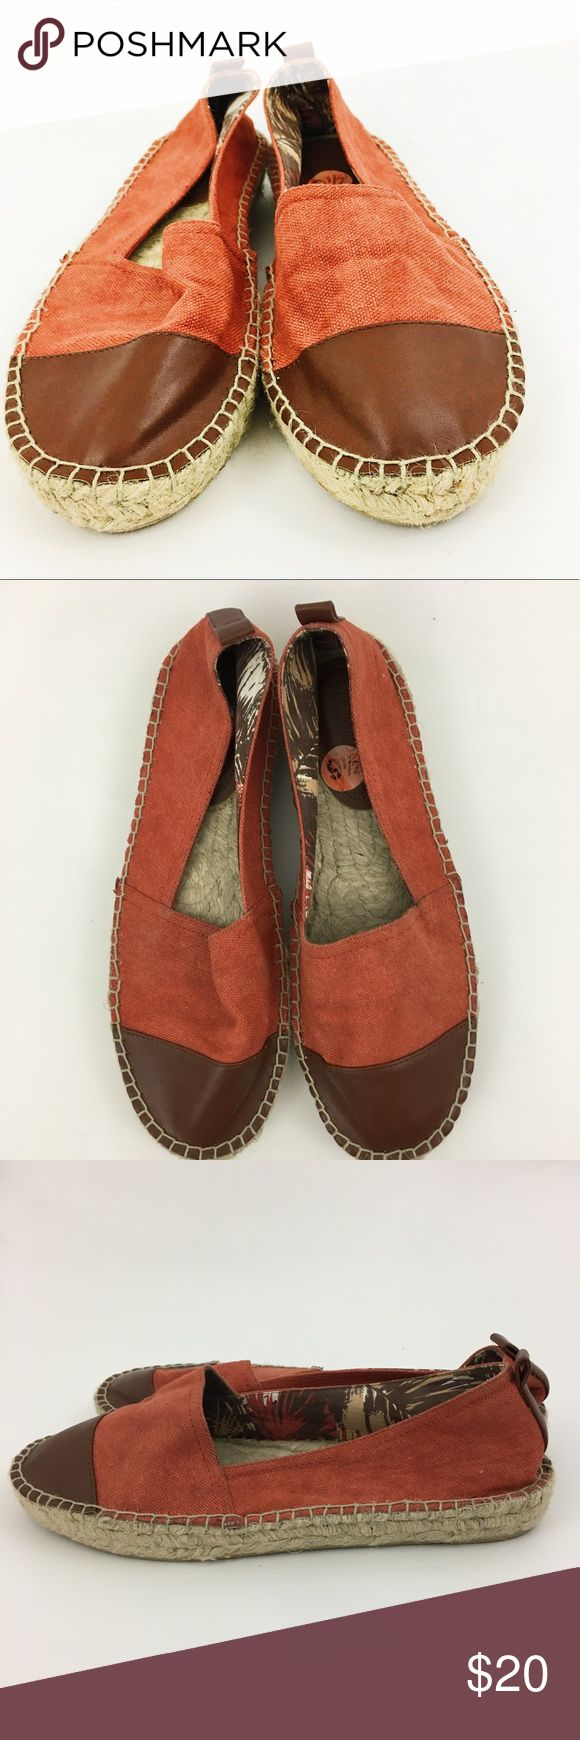 Kenneth Cole Espadrilles with Faux Leather Toe Orange espadrilles with faux leather toe. In great condition. The top is canvas. All manmade materials. ℹbundle for a great dealℹ Kenneth Cole Reaction Shoes Espadrilles